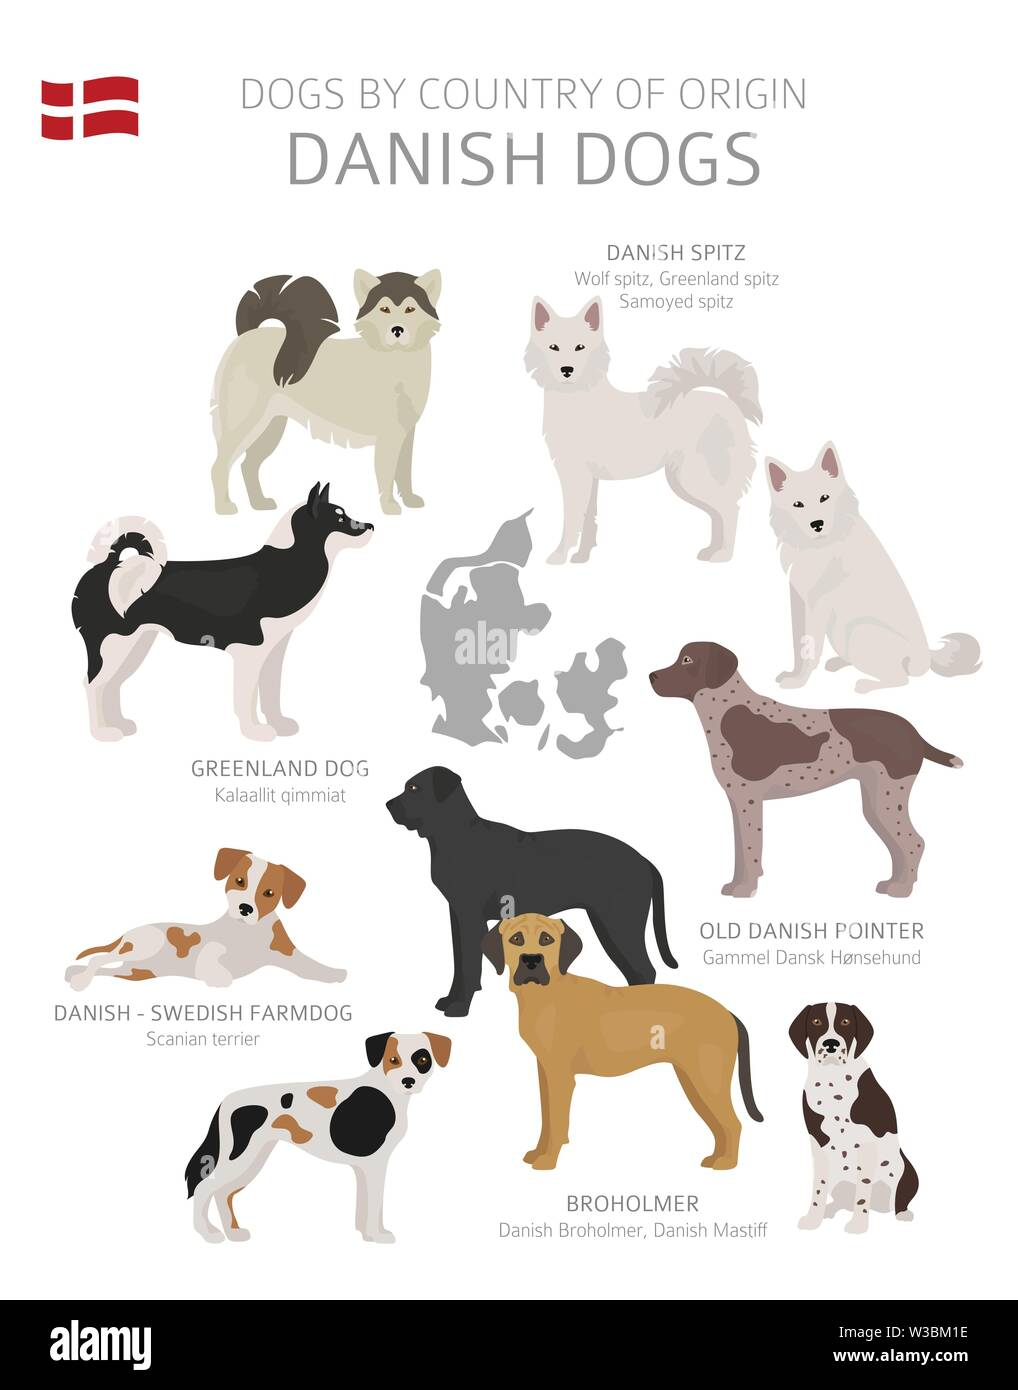 Dogs by country of origin. Danish dog breeds. Shepherds, hunting, herding, toy, working and service dogs  set.  Vector illustration Stock Vector